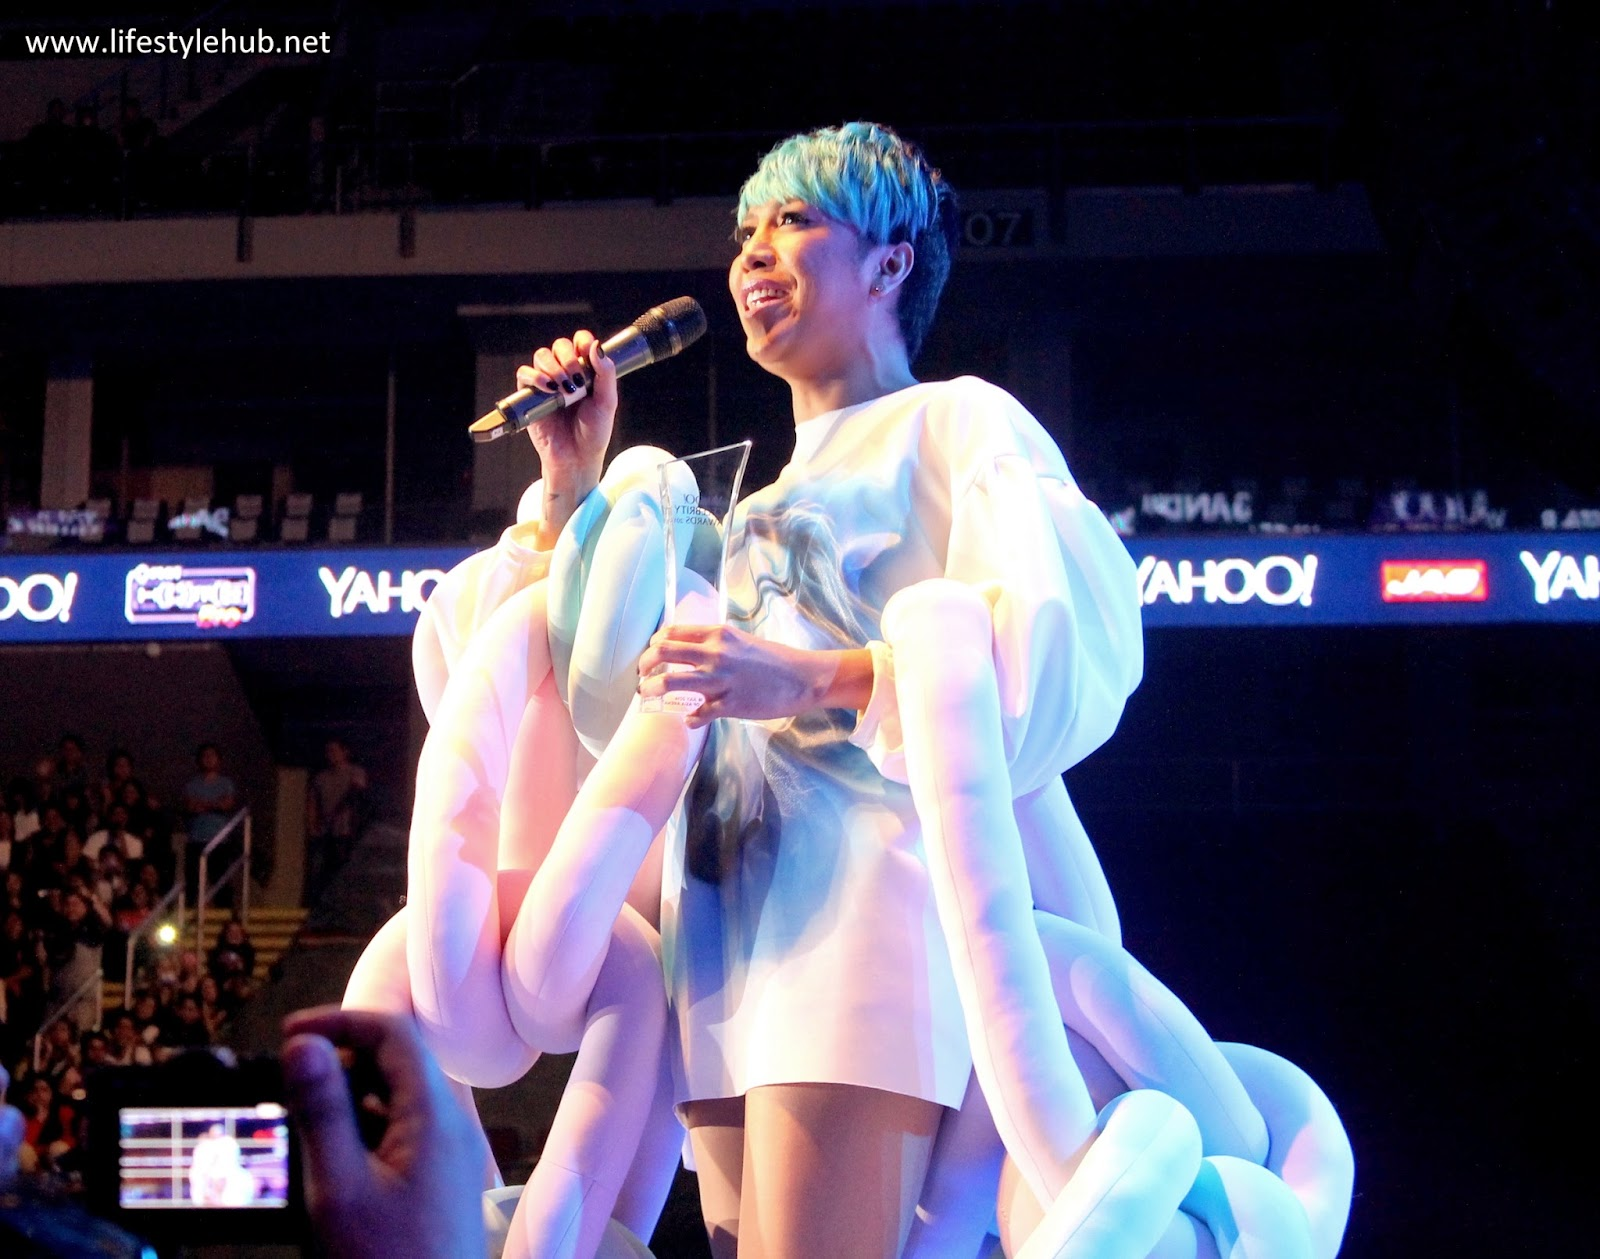 vice ganda social media star yahoo awards